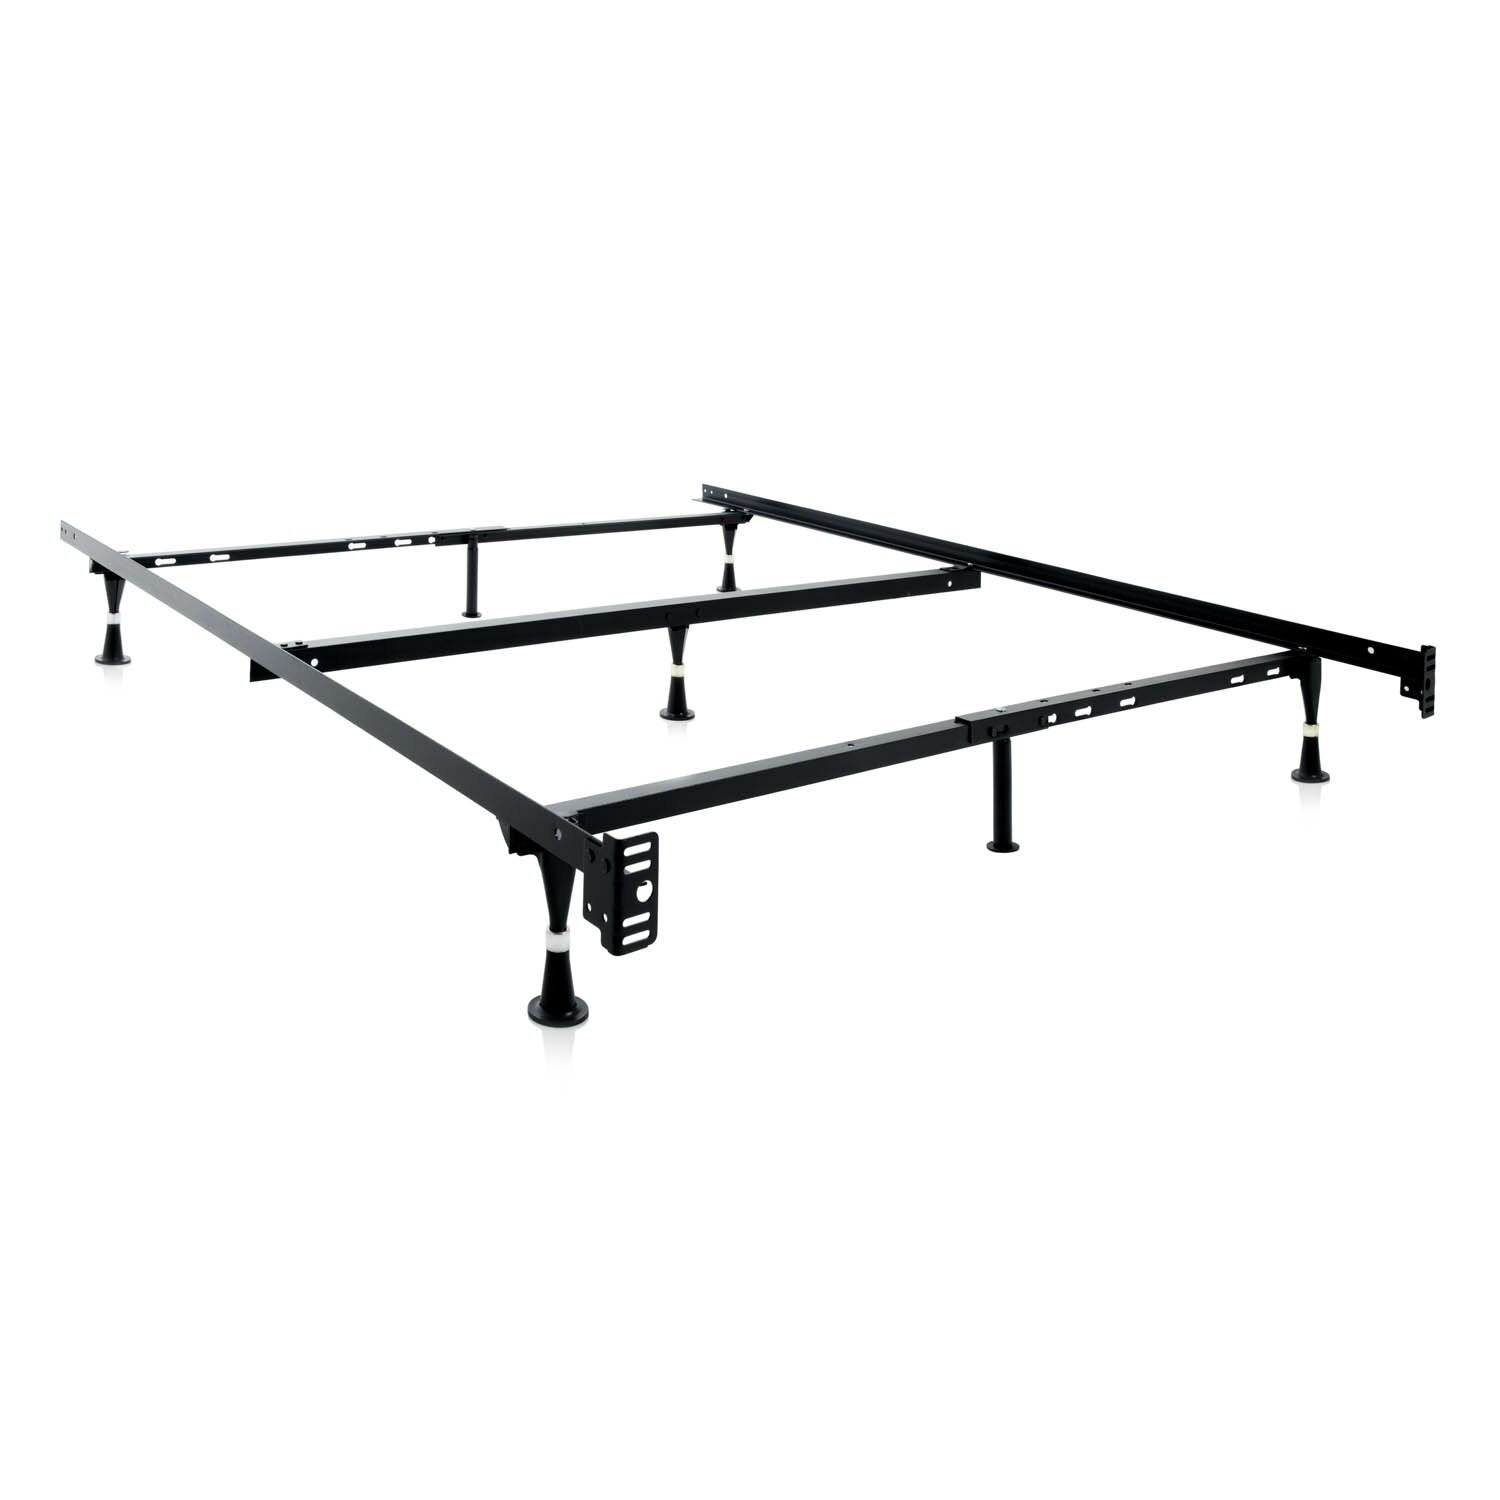 malouf 7 leg adjustable metal bed frame with center support